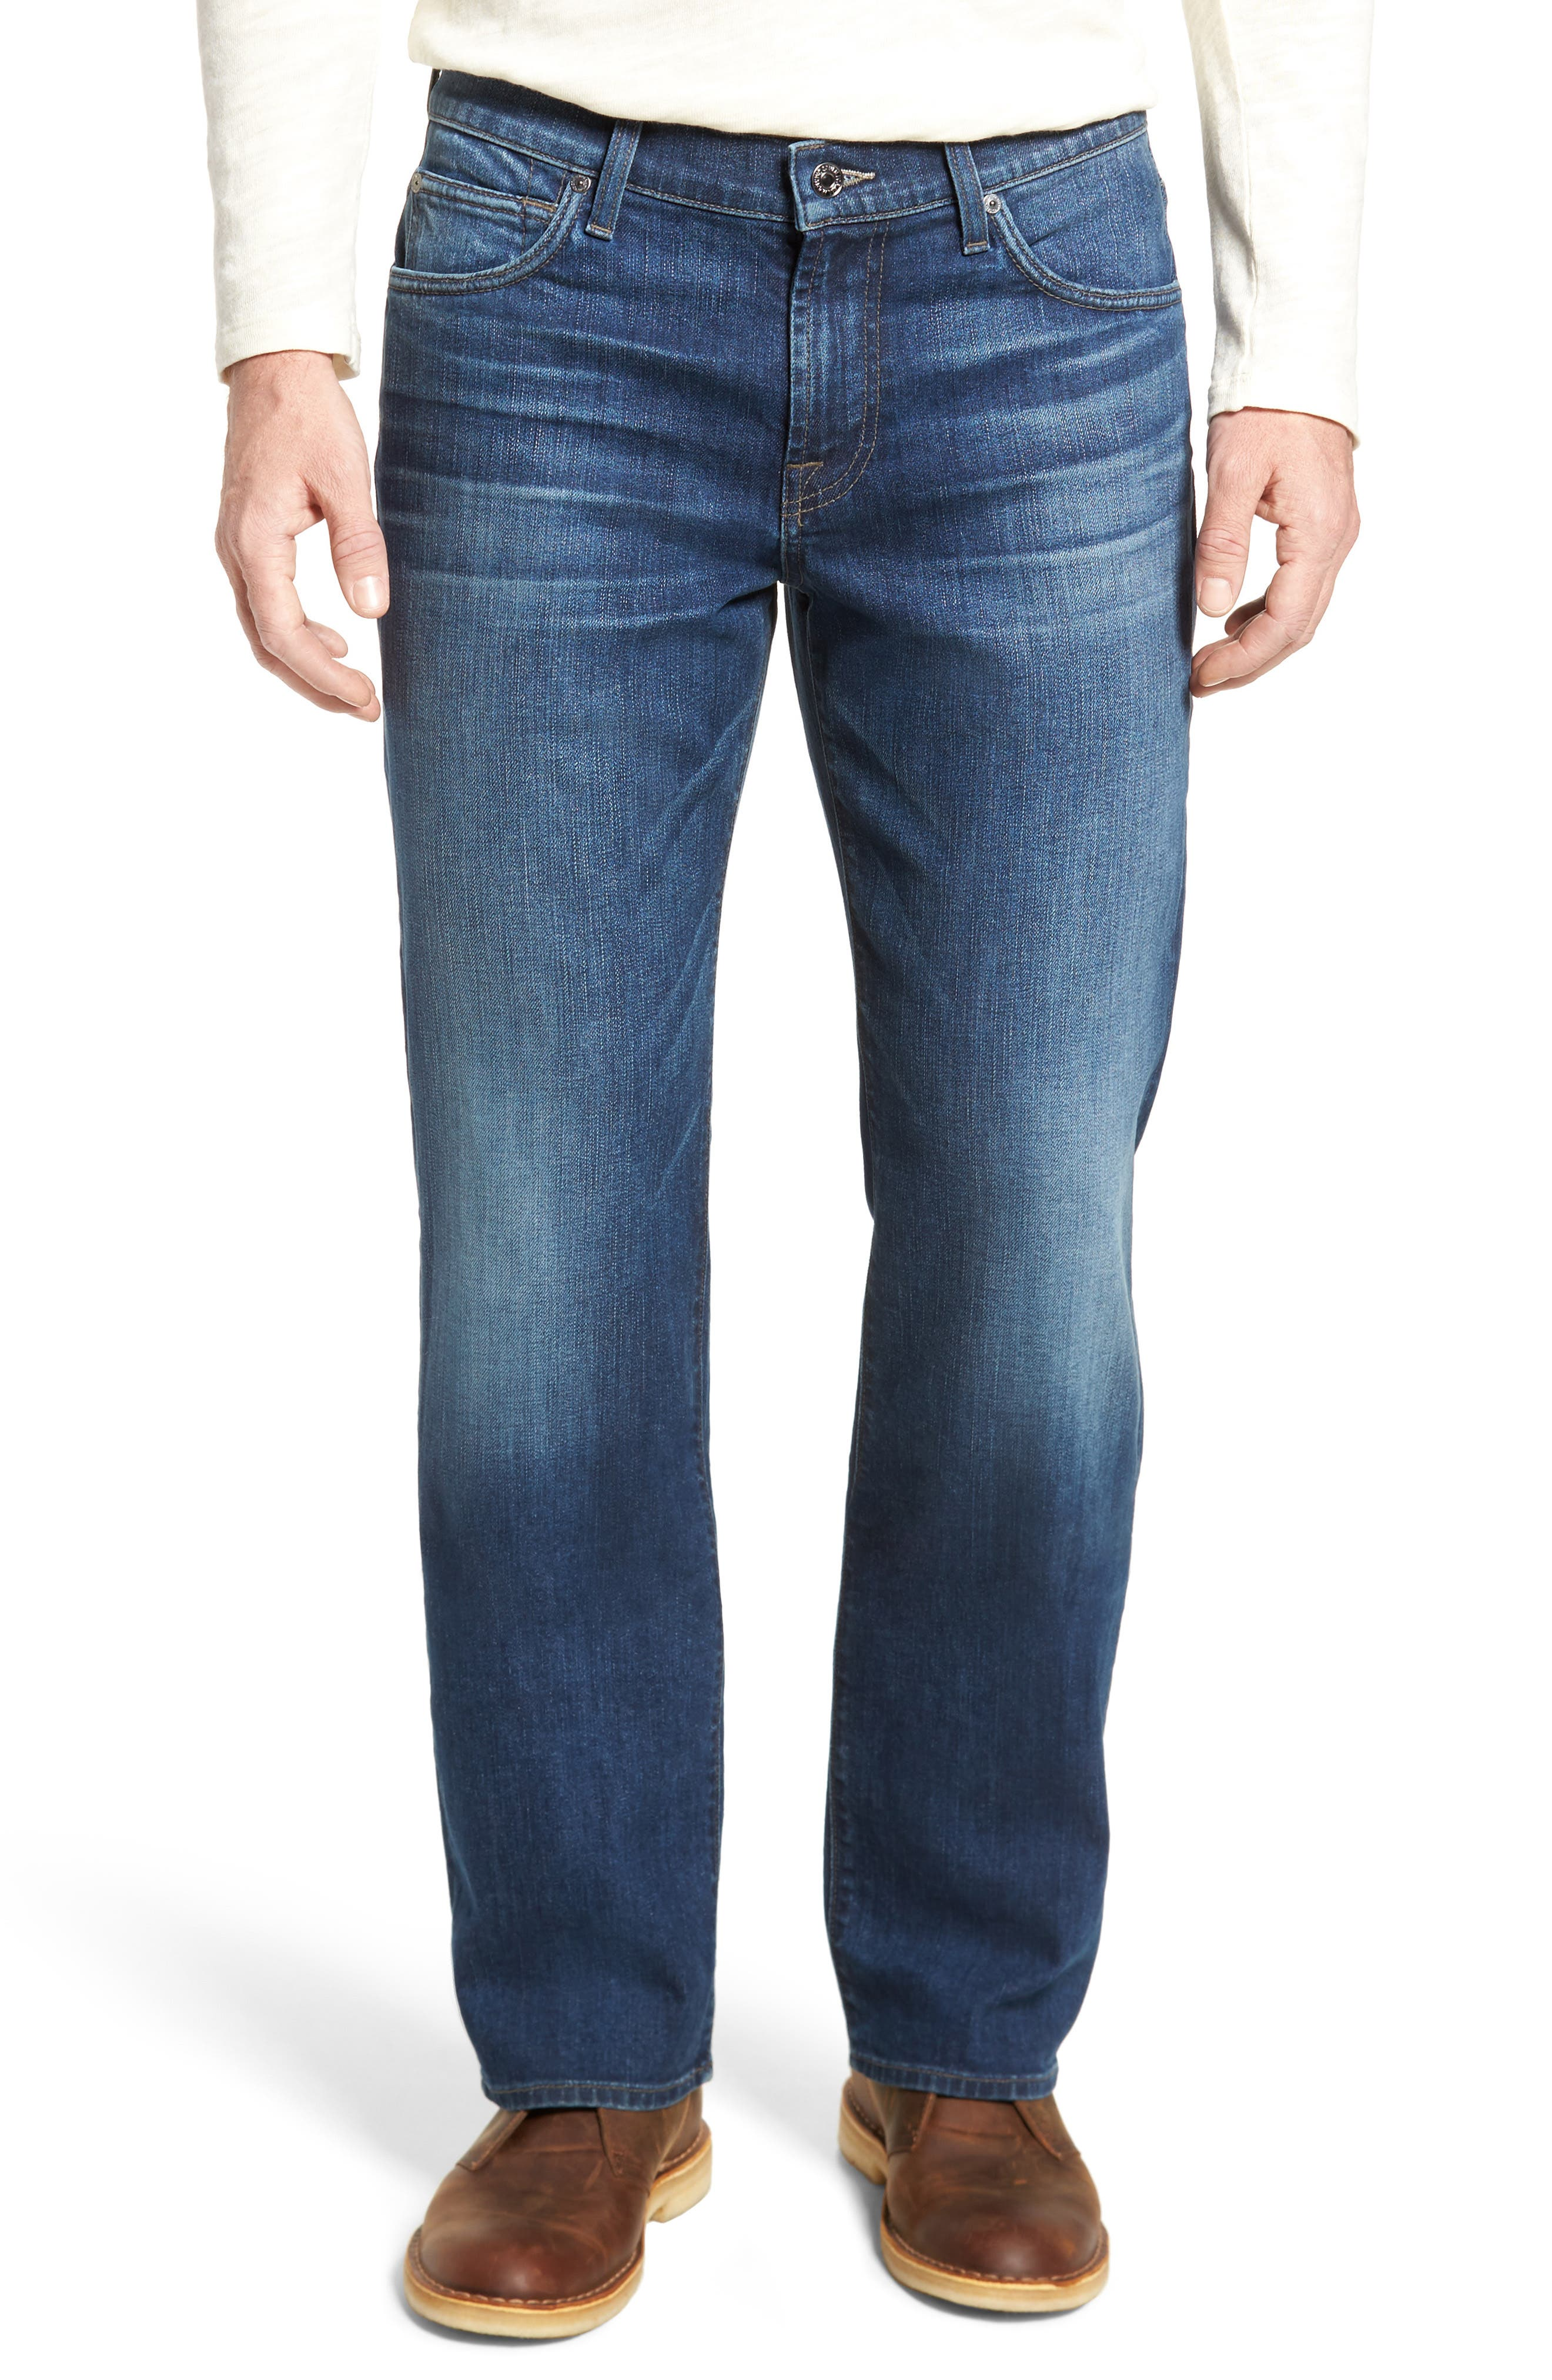 Austyn Relaxed Fit Jeans,                         Main,                         color, Recollection